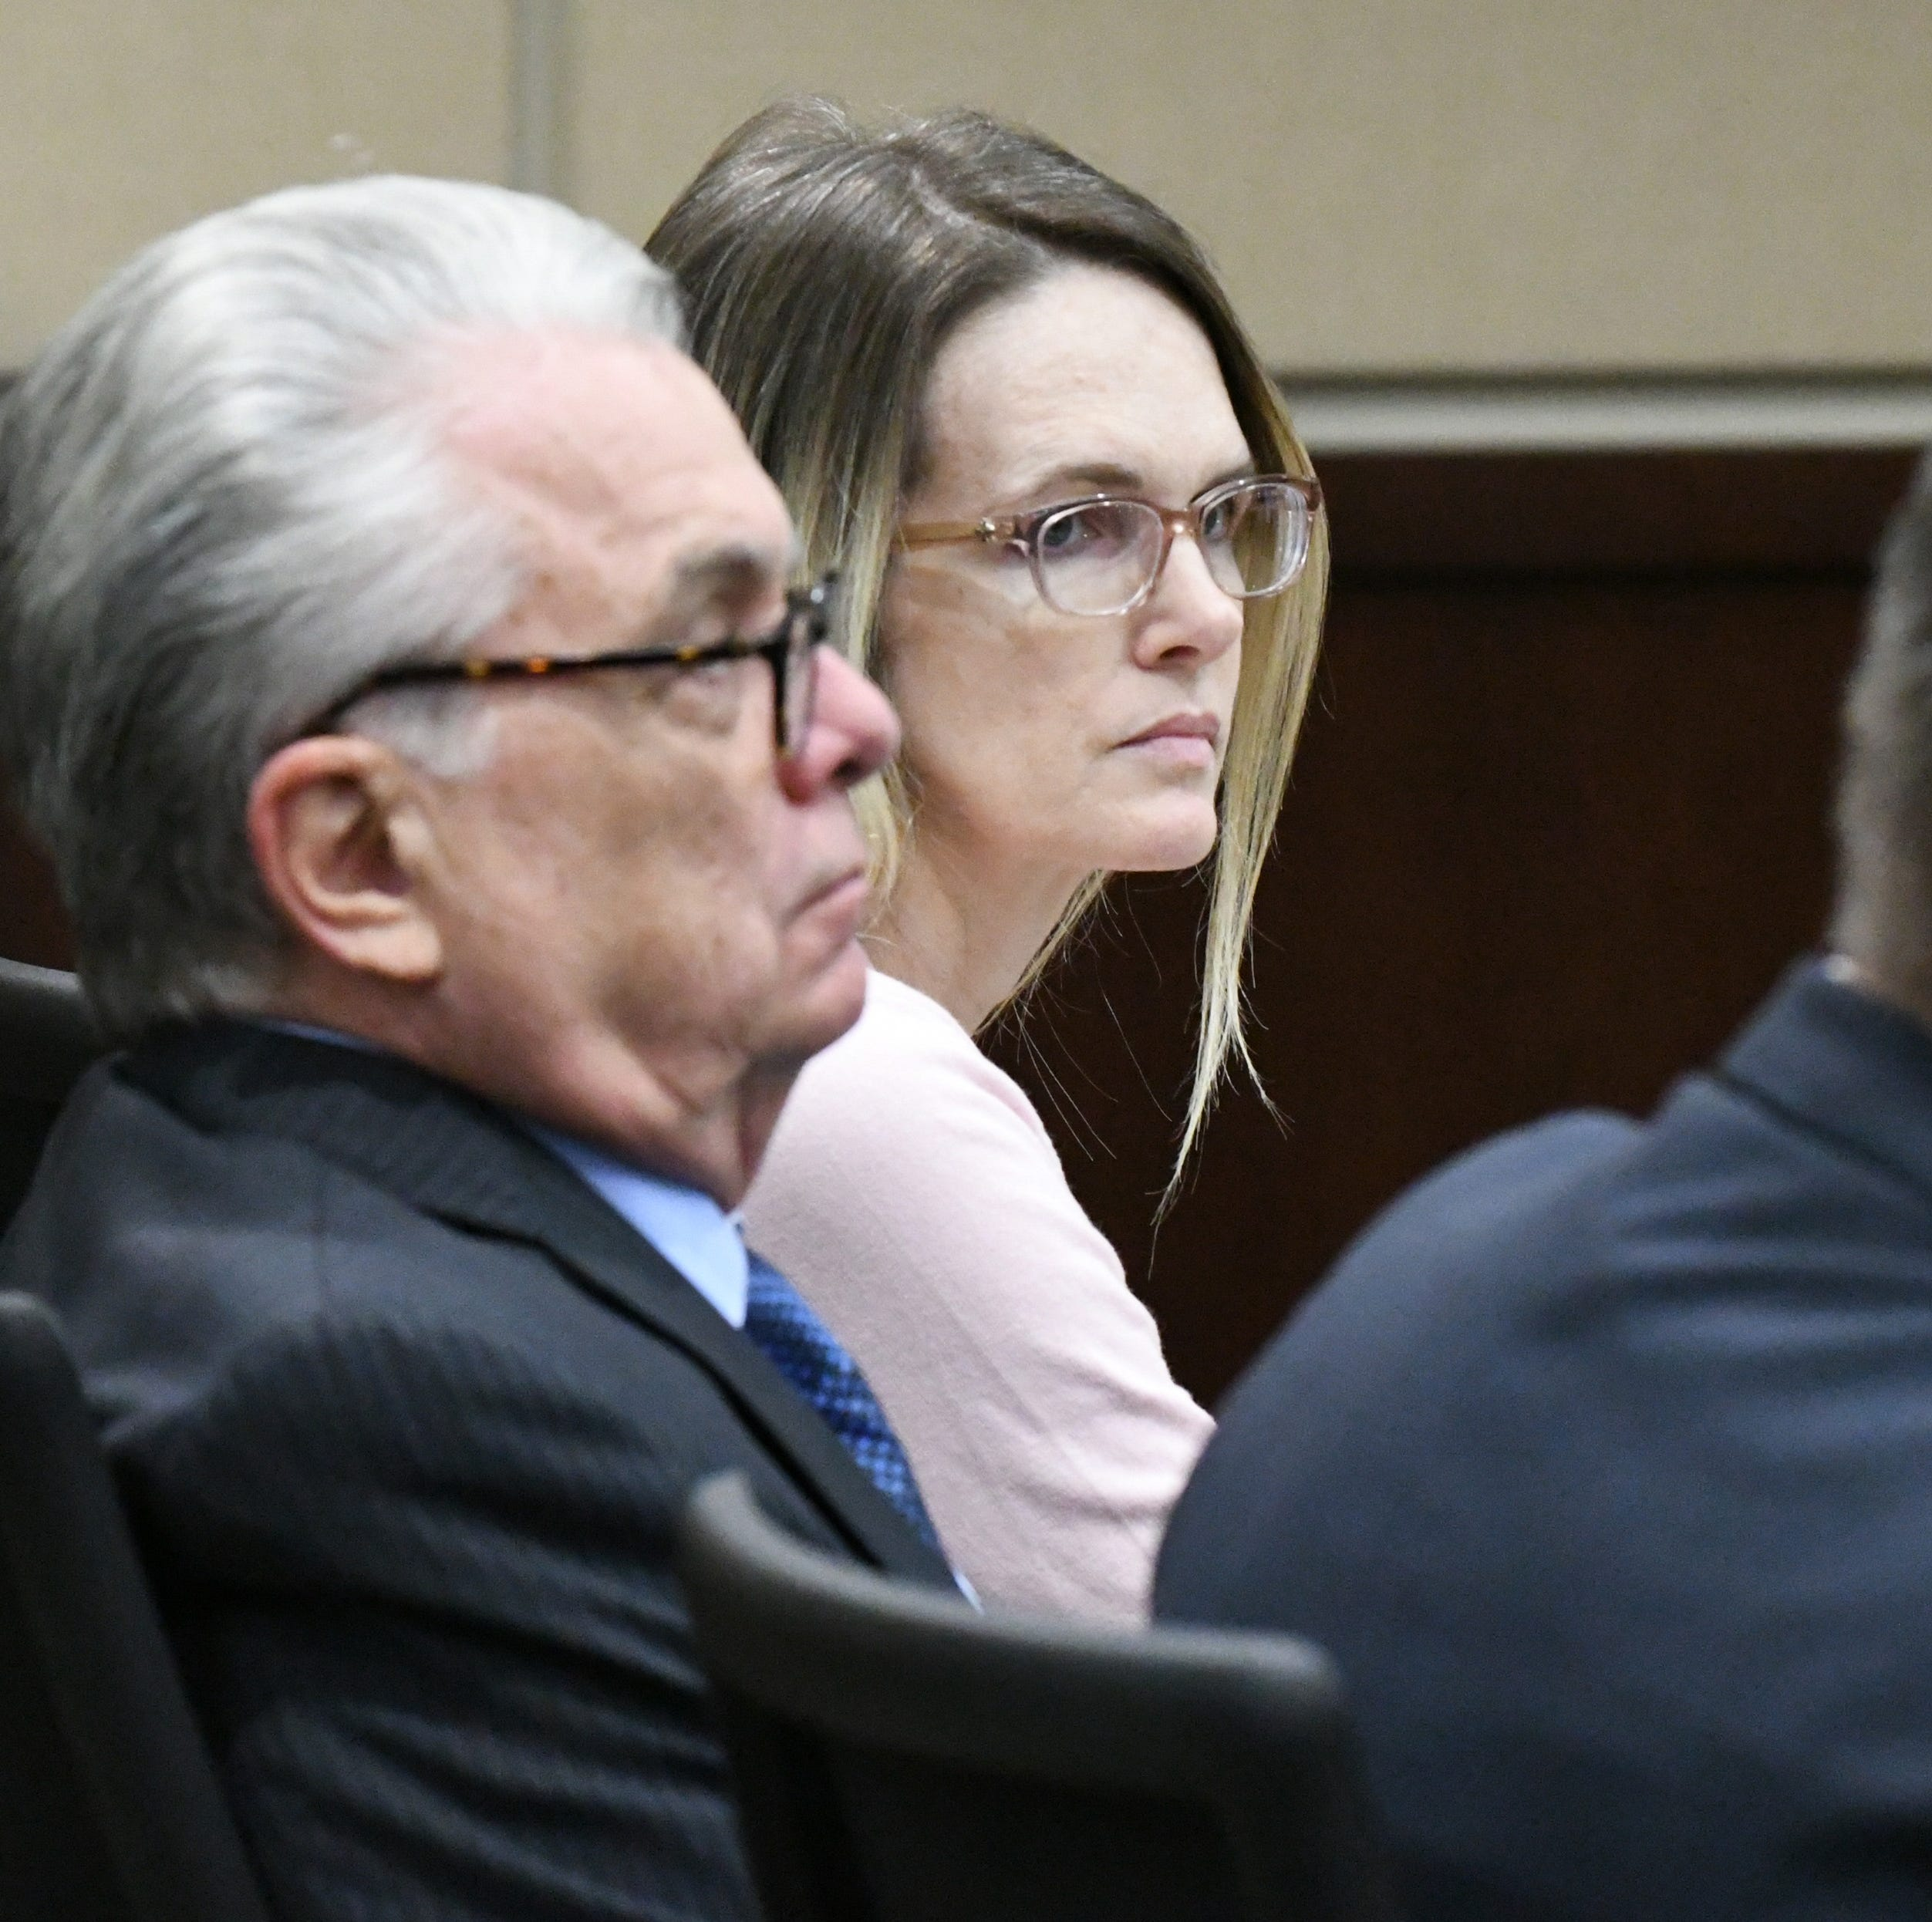 Denise Williams murder trial: Brian Winchester to testify